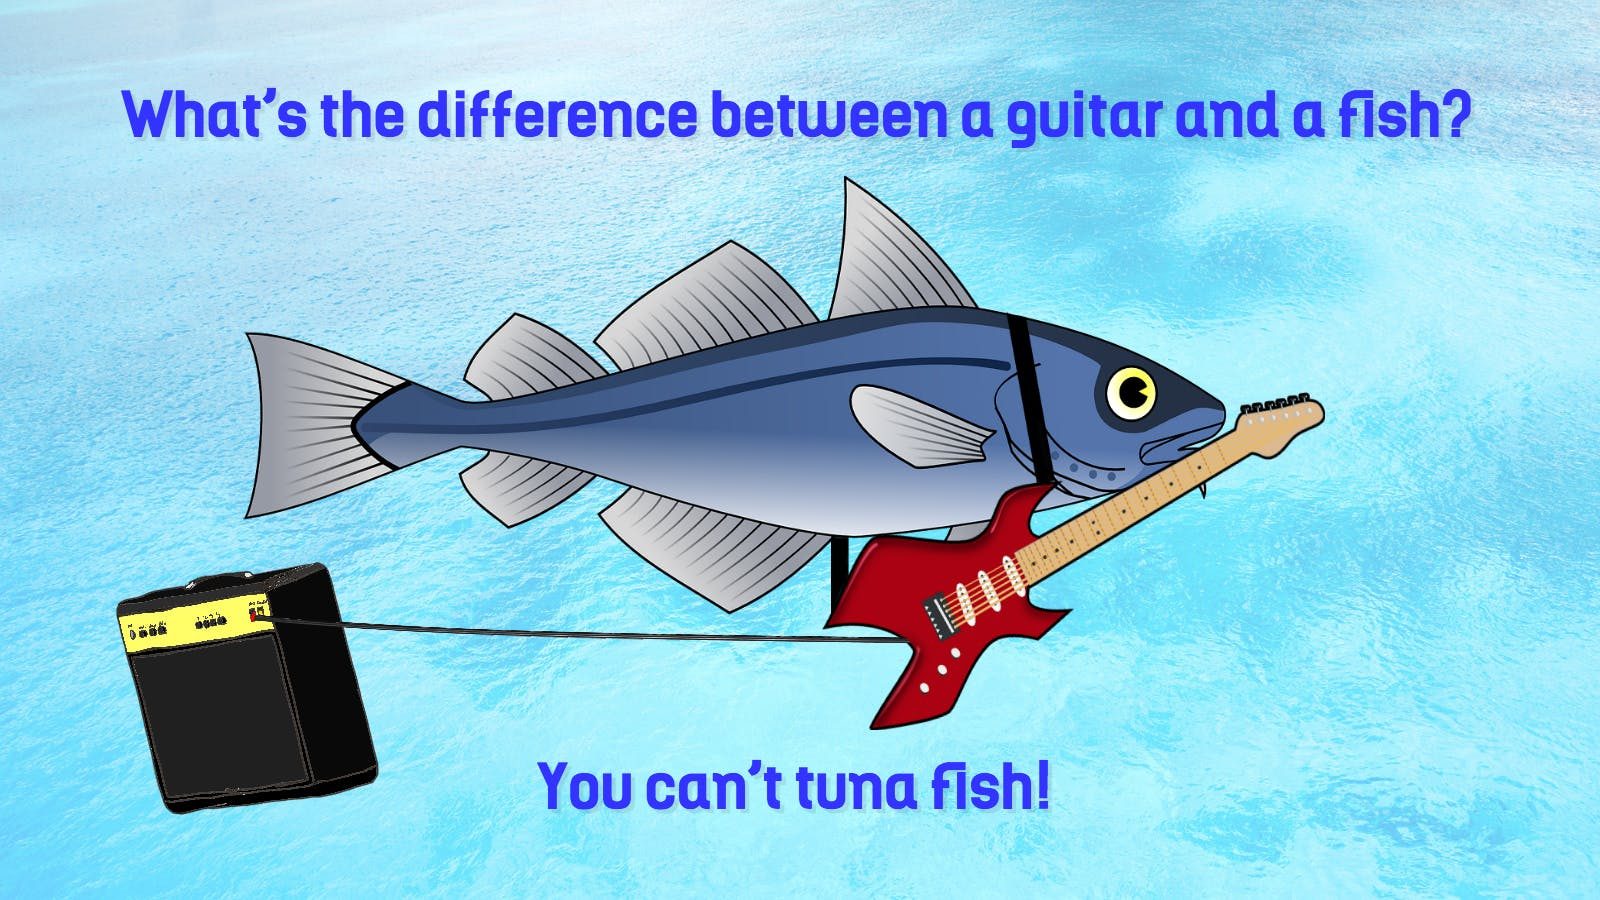 This is a tuna playing guitar